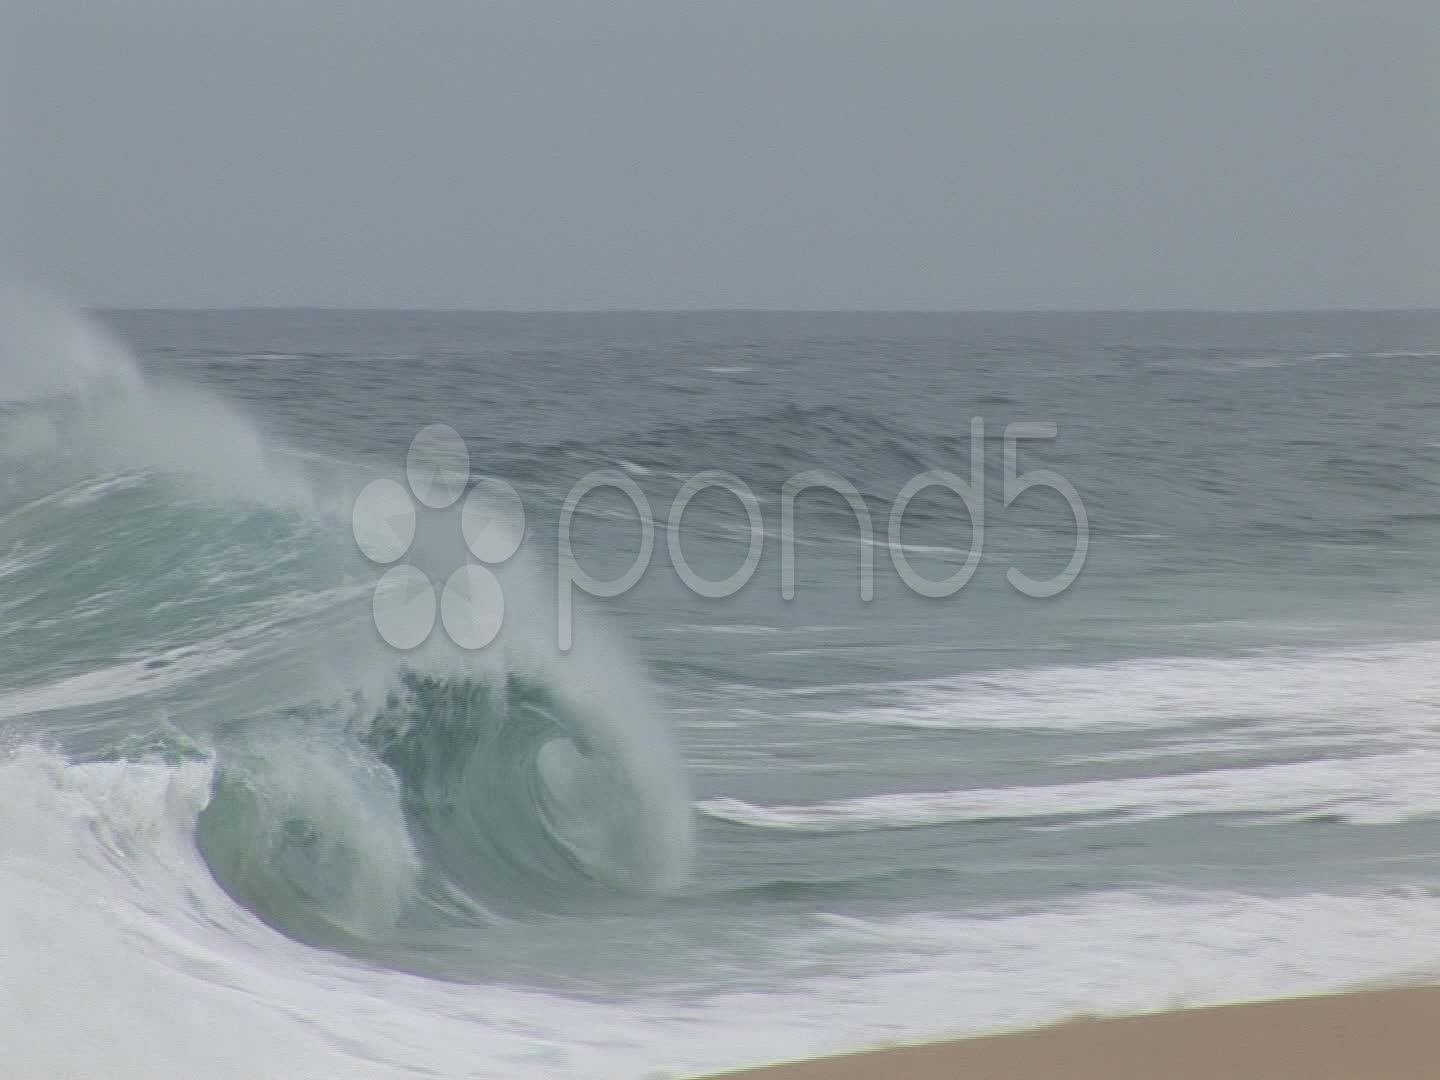 Hurricane Wave Pounds Shoreline Stock Footage Pounds Wave Hurricane Footage Waves Shoreline Stock Footage